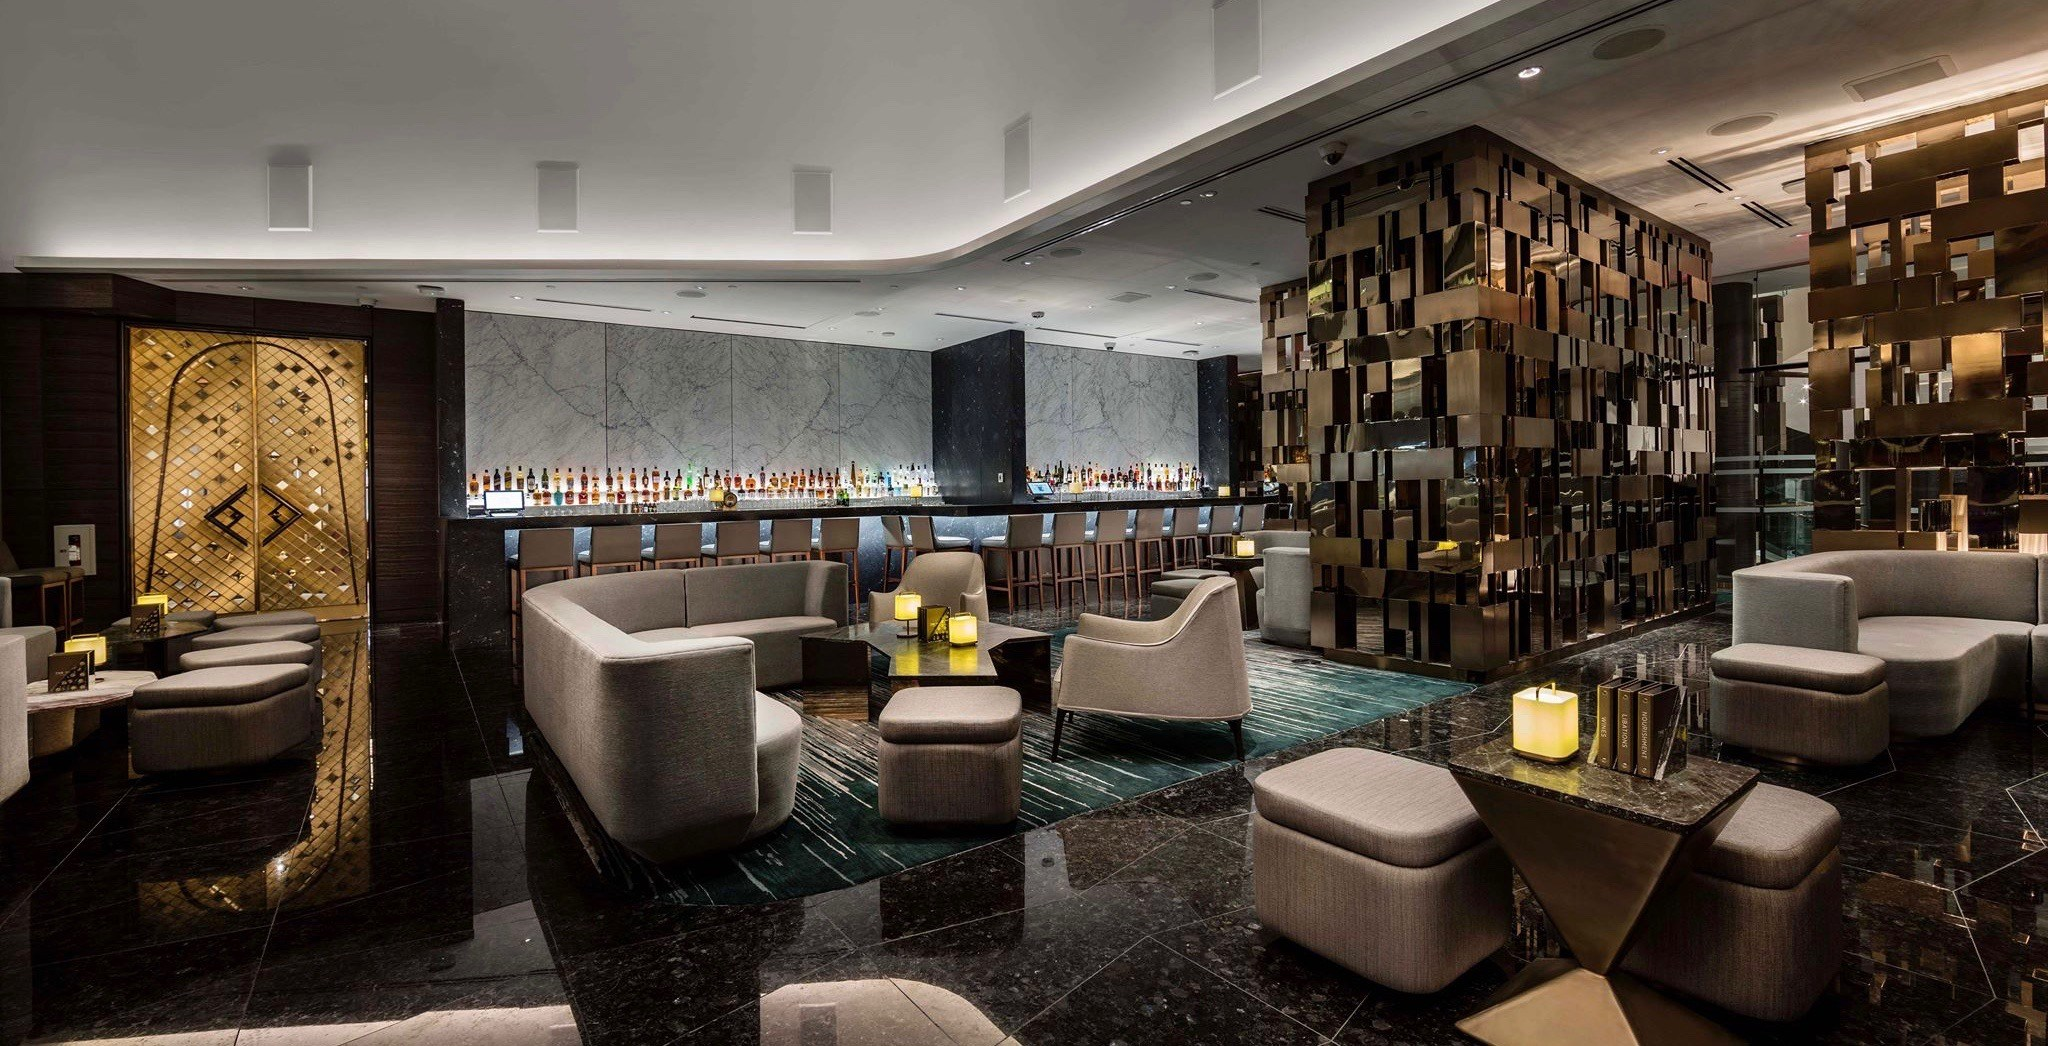 'Total sh*thole': Vancouver's Trump Tower Champagne Bar is getting ruined online